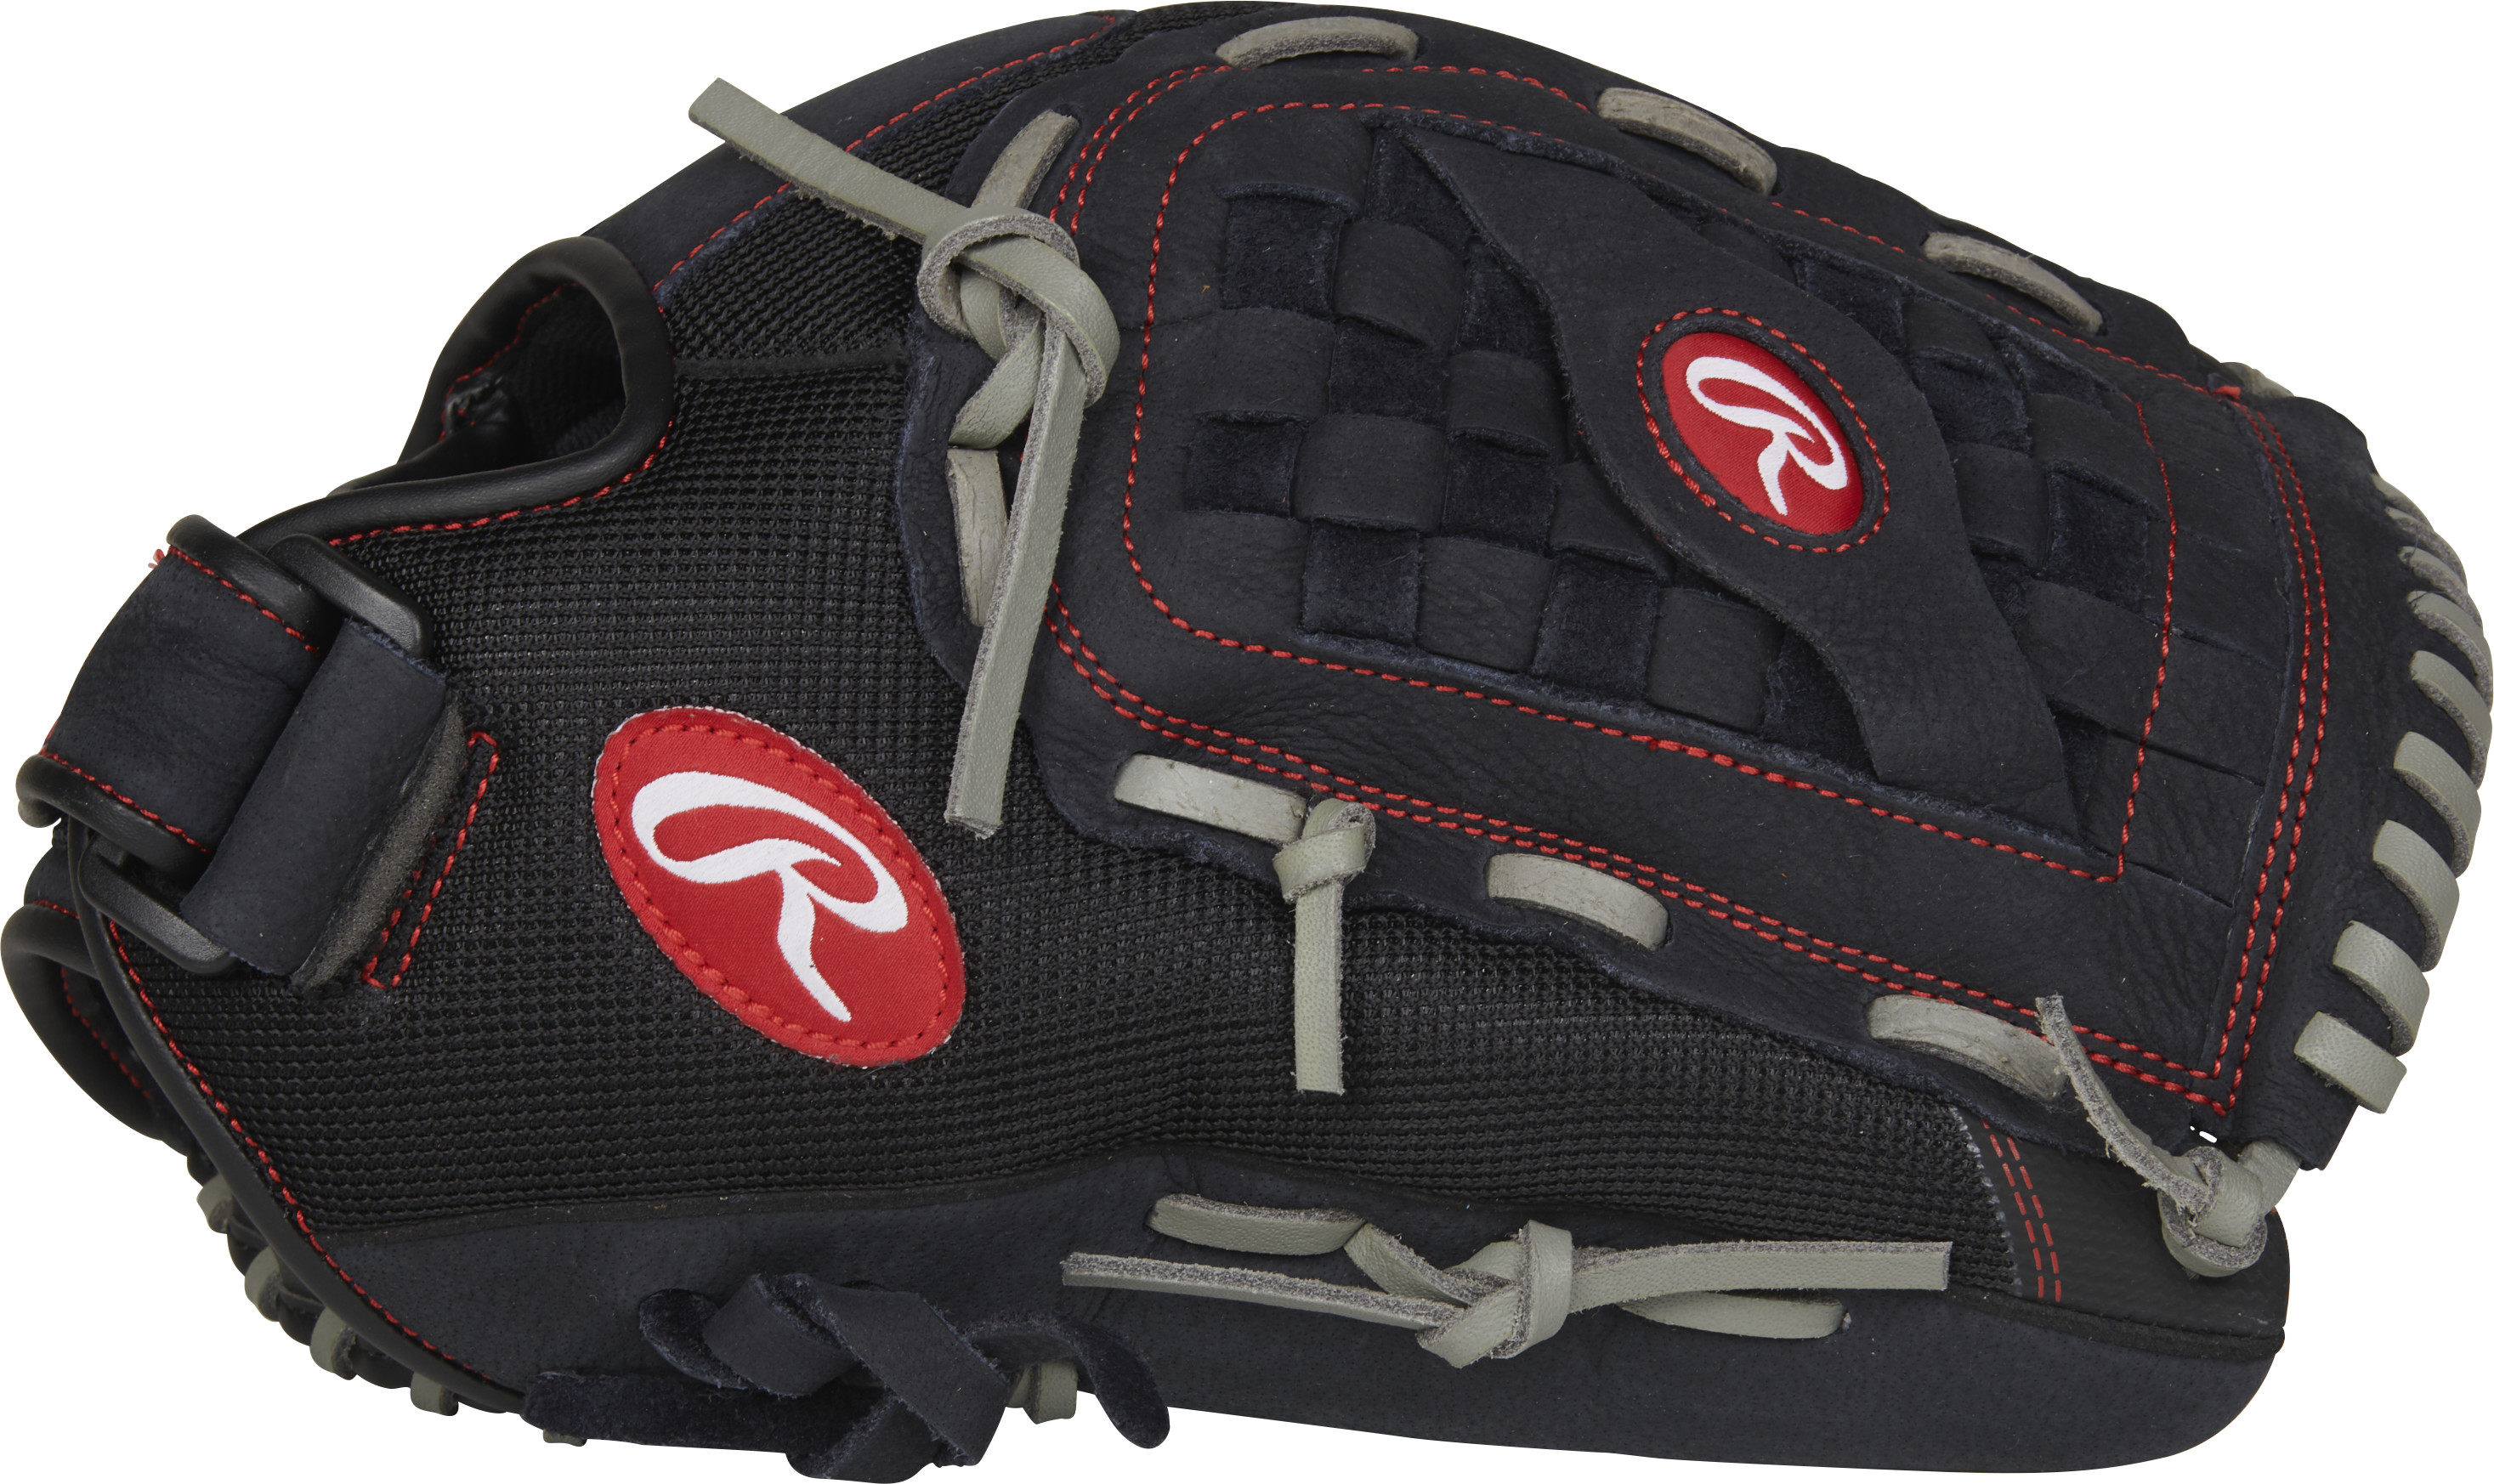 http://www.bestbatdeals.com/images/gloves/rawlings/R130BGS-3.jpg